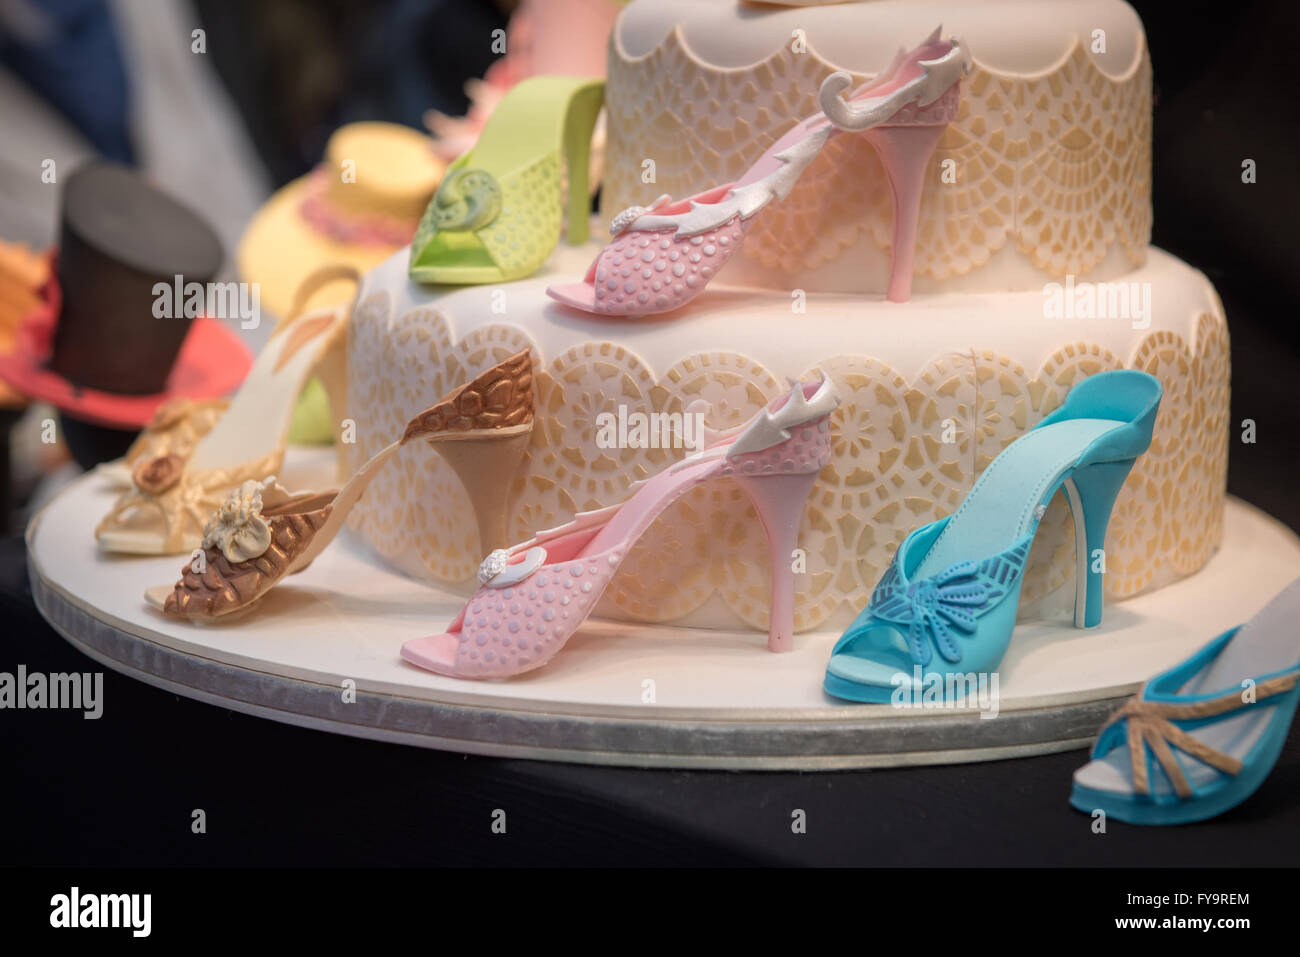 Edible high heels shoes birthday cake decor at Cake International